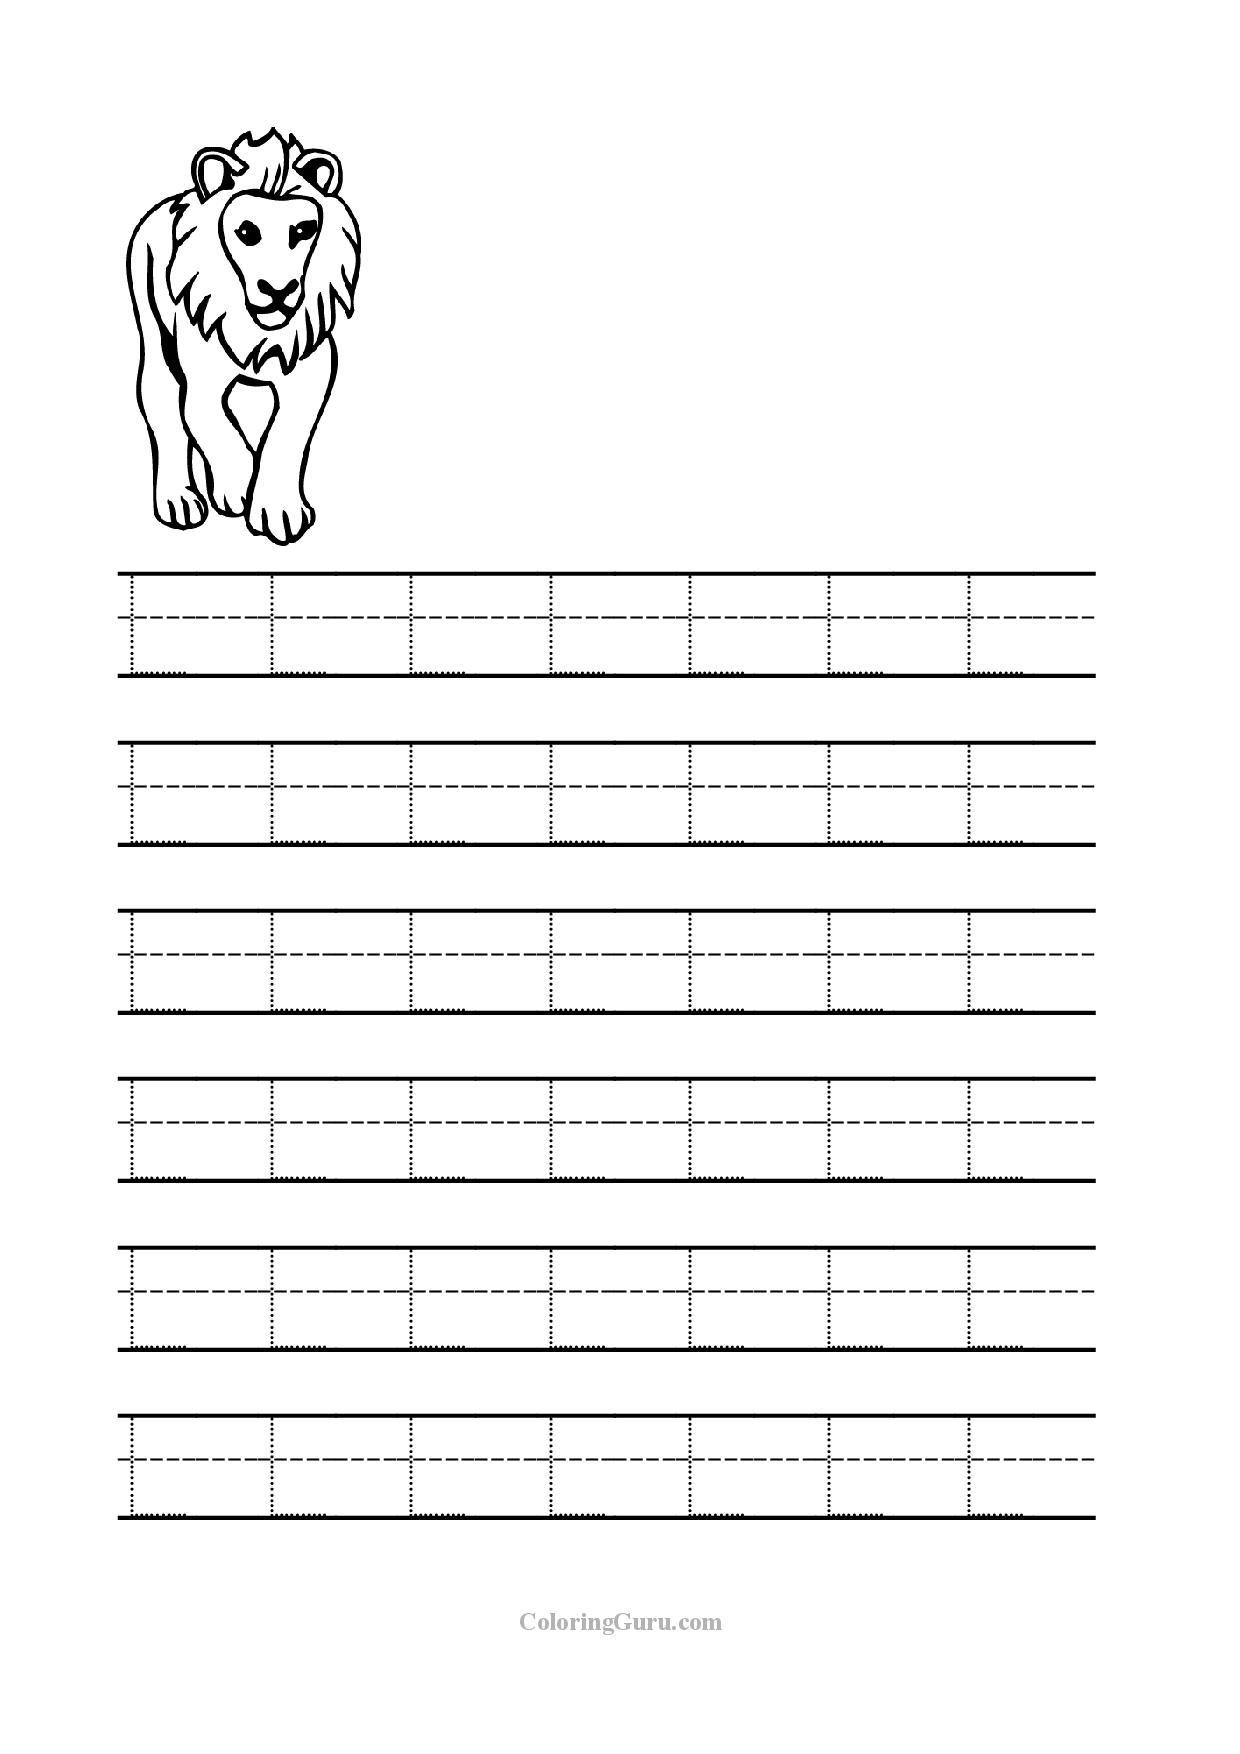 Free Printable Tracing Letter L Worksheets For Preschool inside Tracing Letter L Worksheets